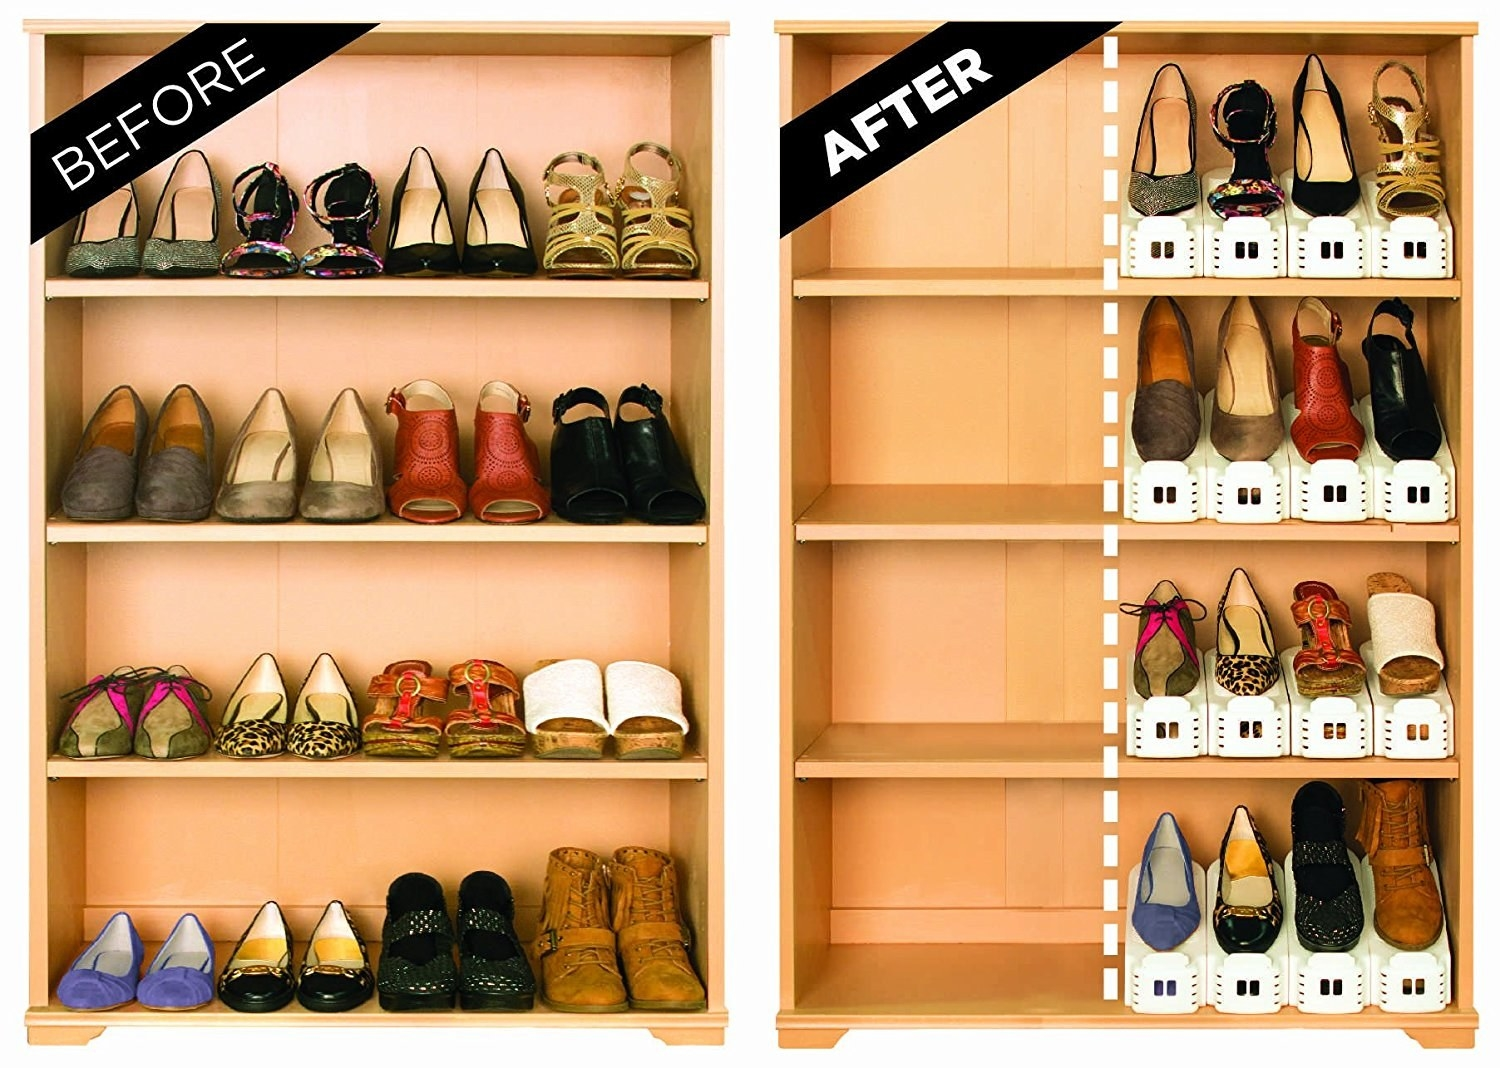 Shelves before and after using shoe slotz